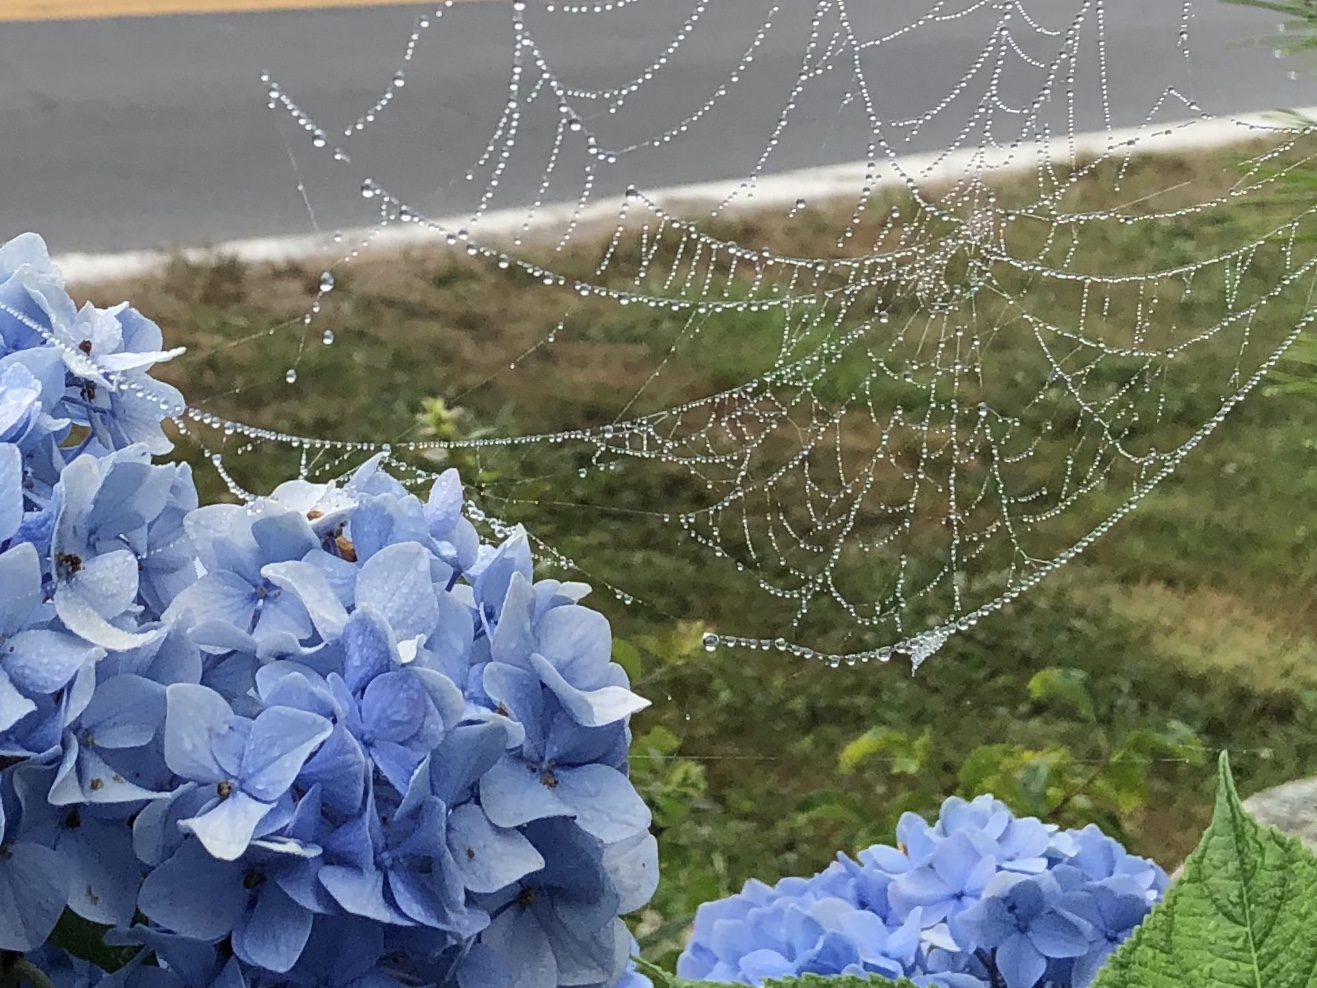 071920-spider-web-jewels